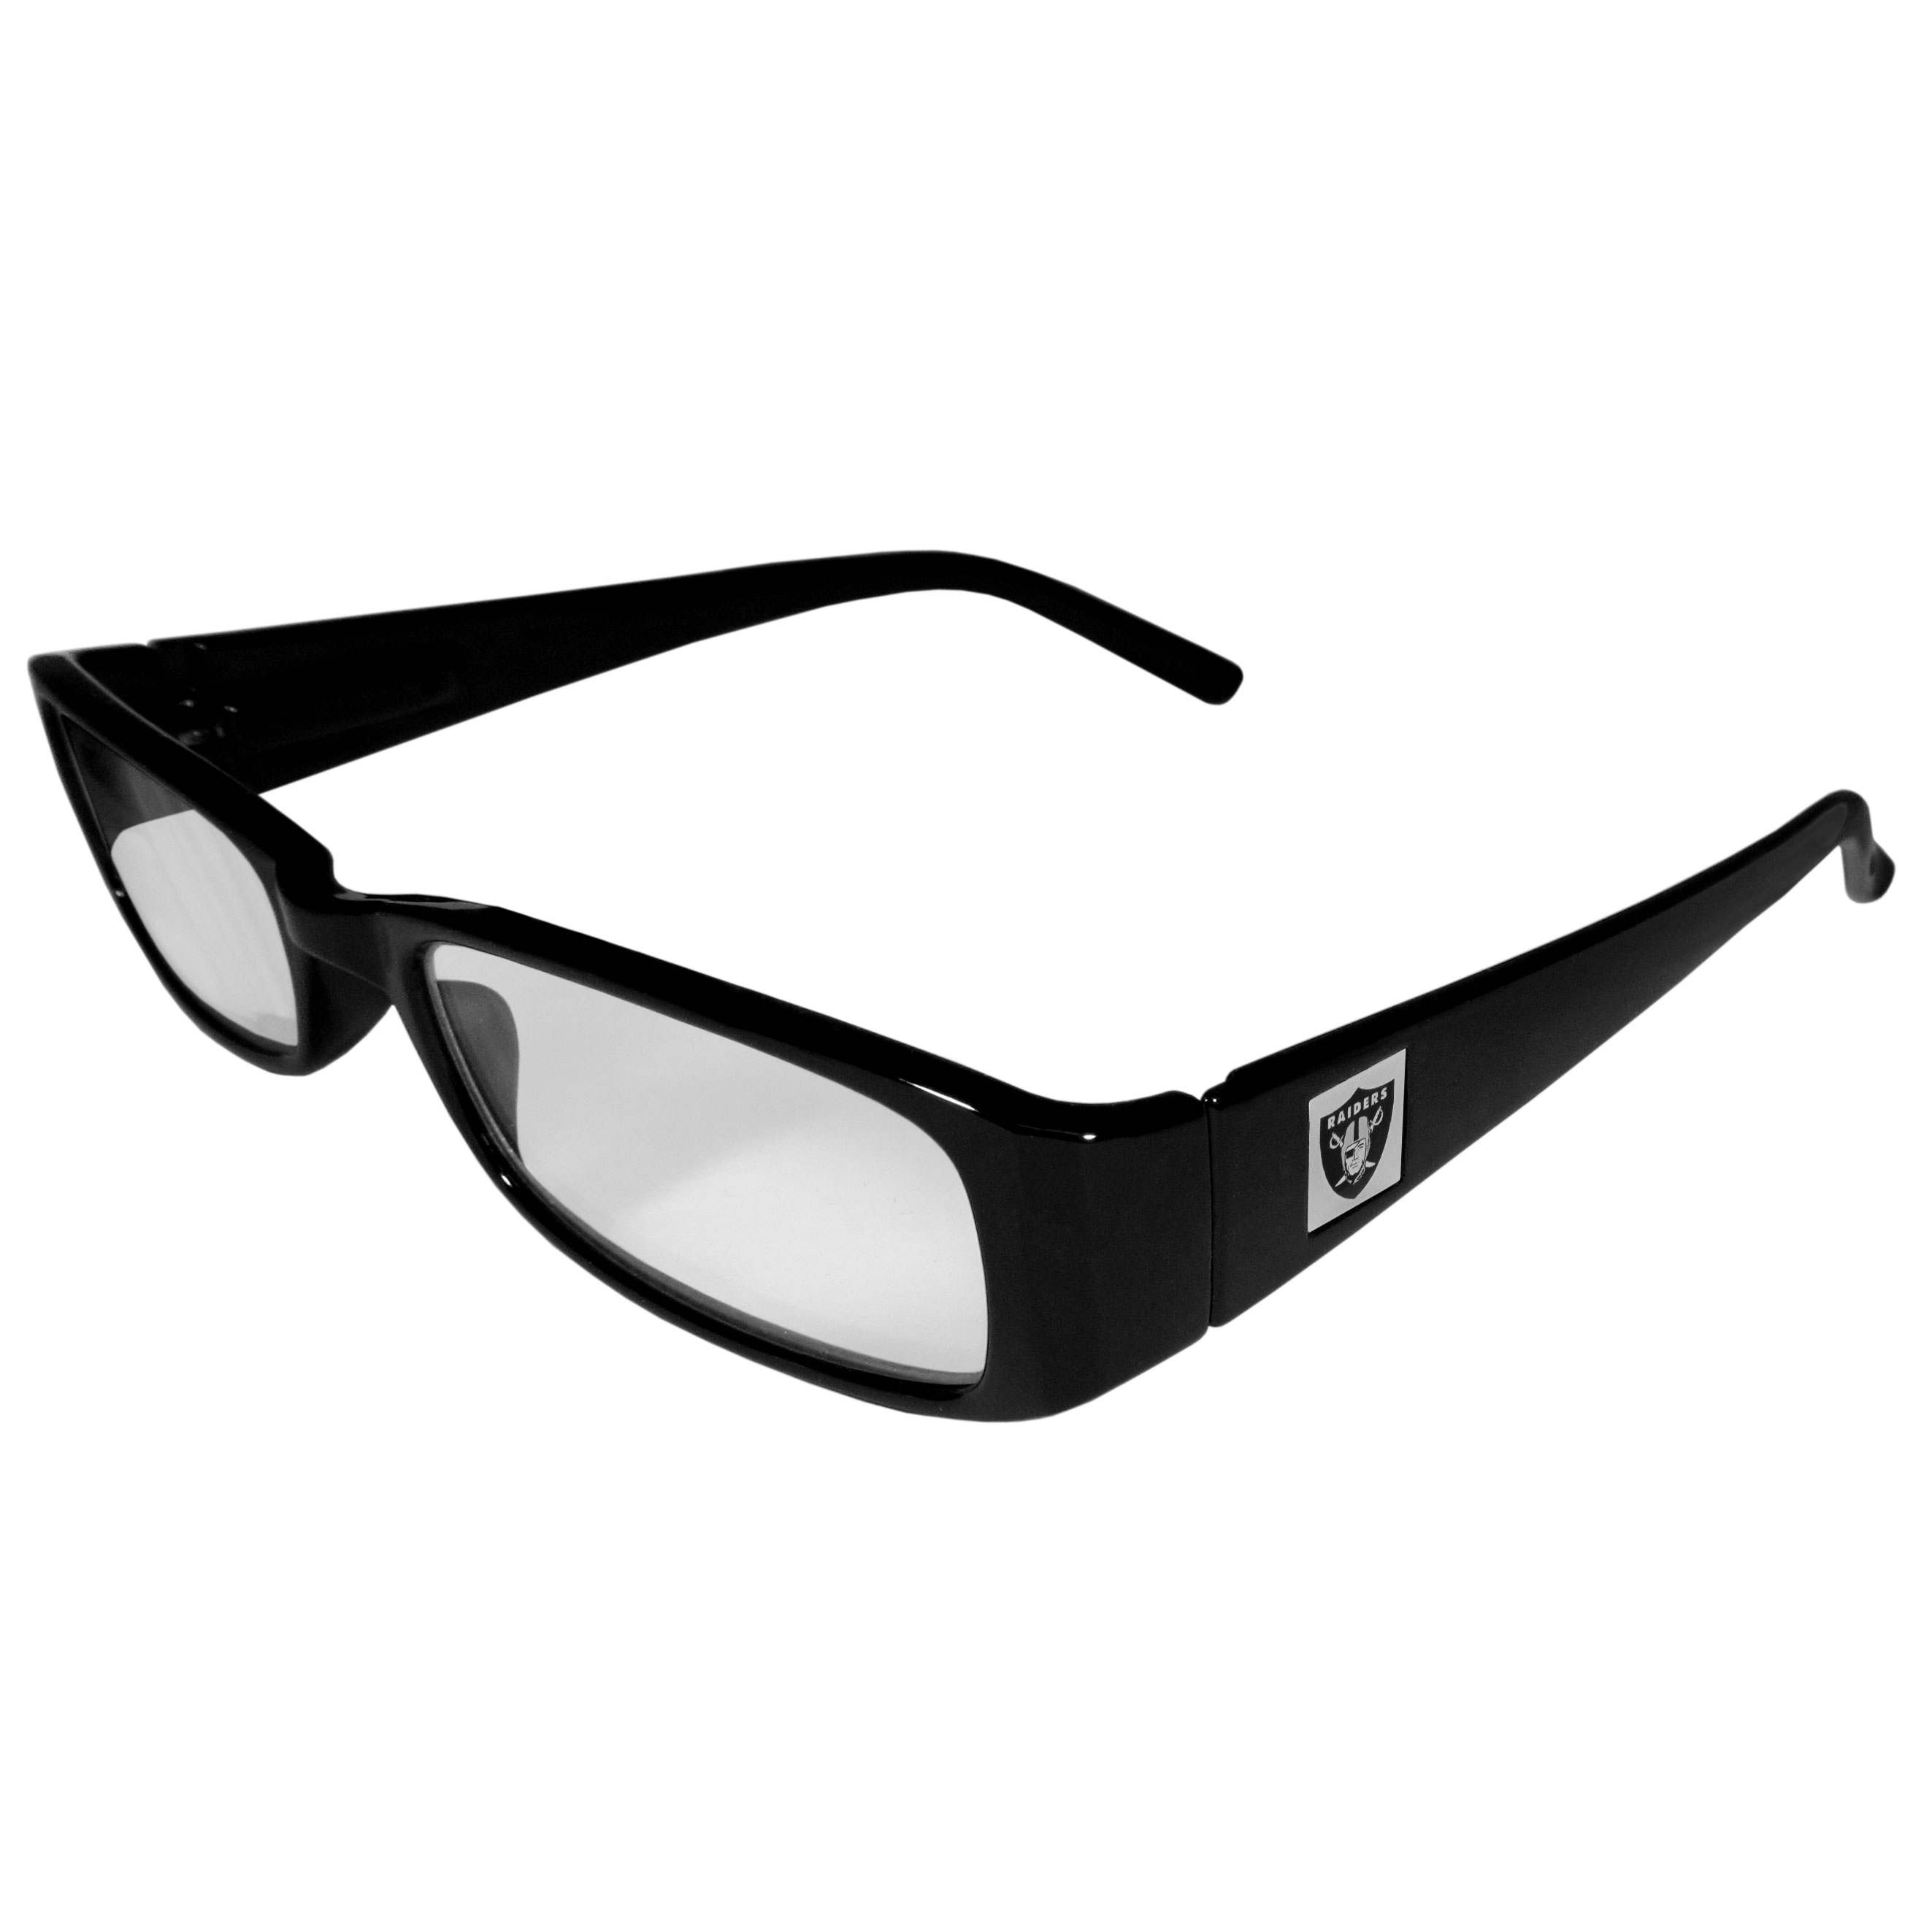 Oakland Raiders Black Reading Glasses +1.50 - Our Oakland Raiders reading glasses are 5.25 inches wide and feature the team logo on each arm. Magnification Power 1.50